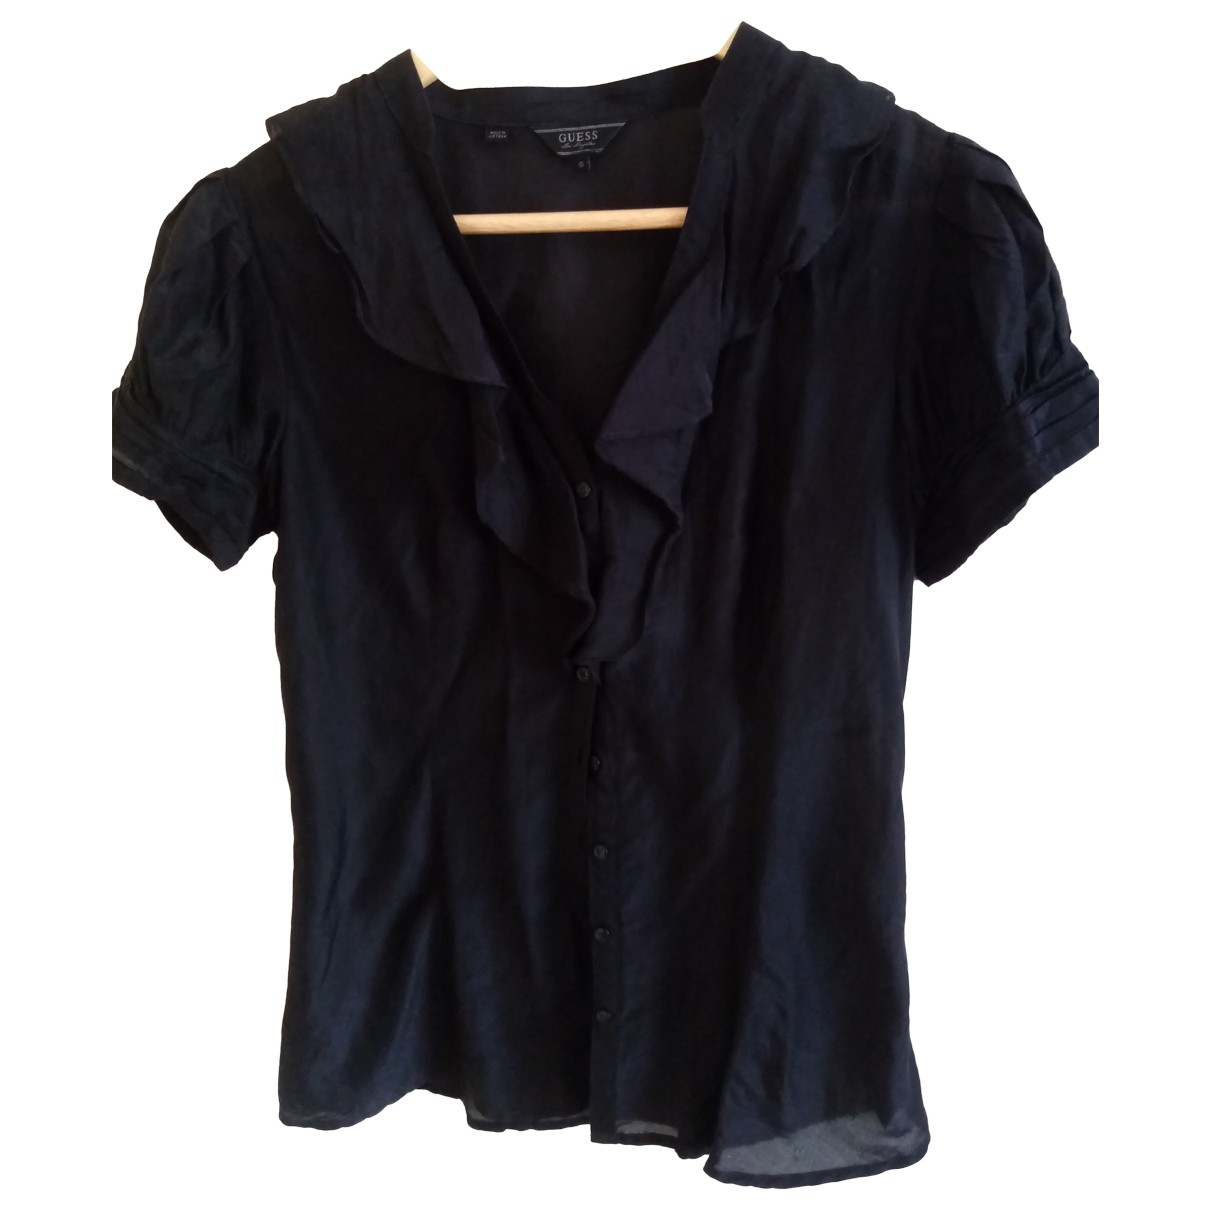 Guess \N Black Cotton  top for Women S International